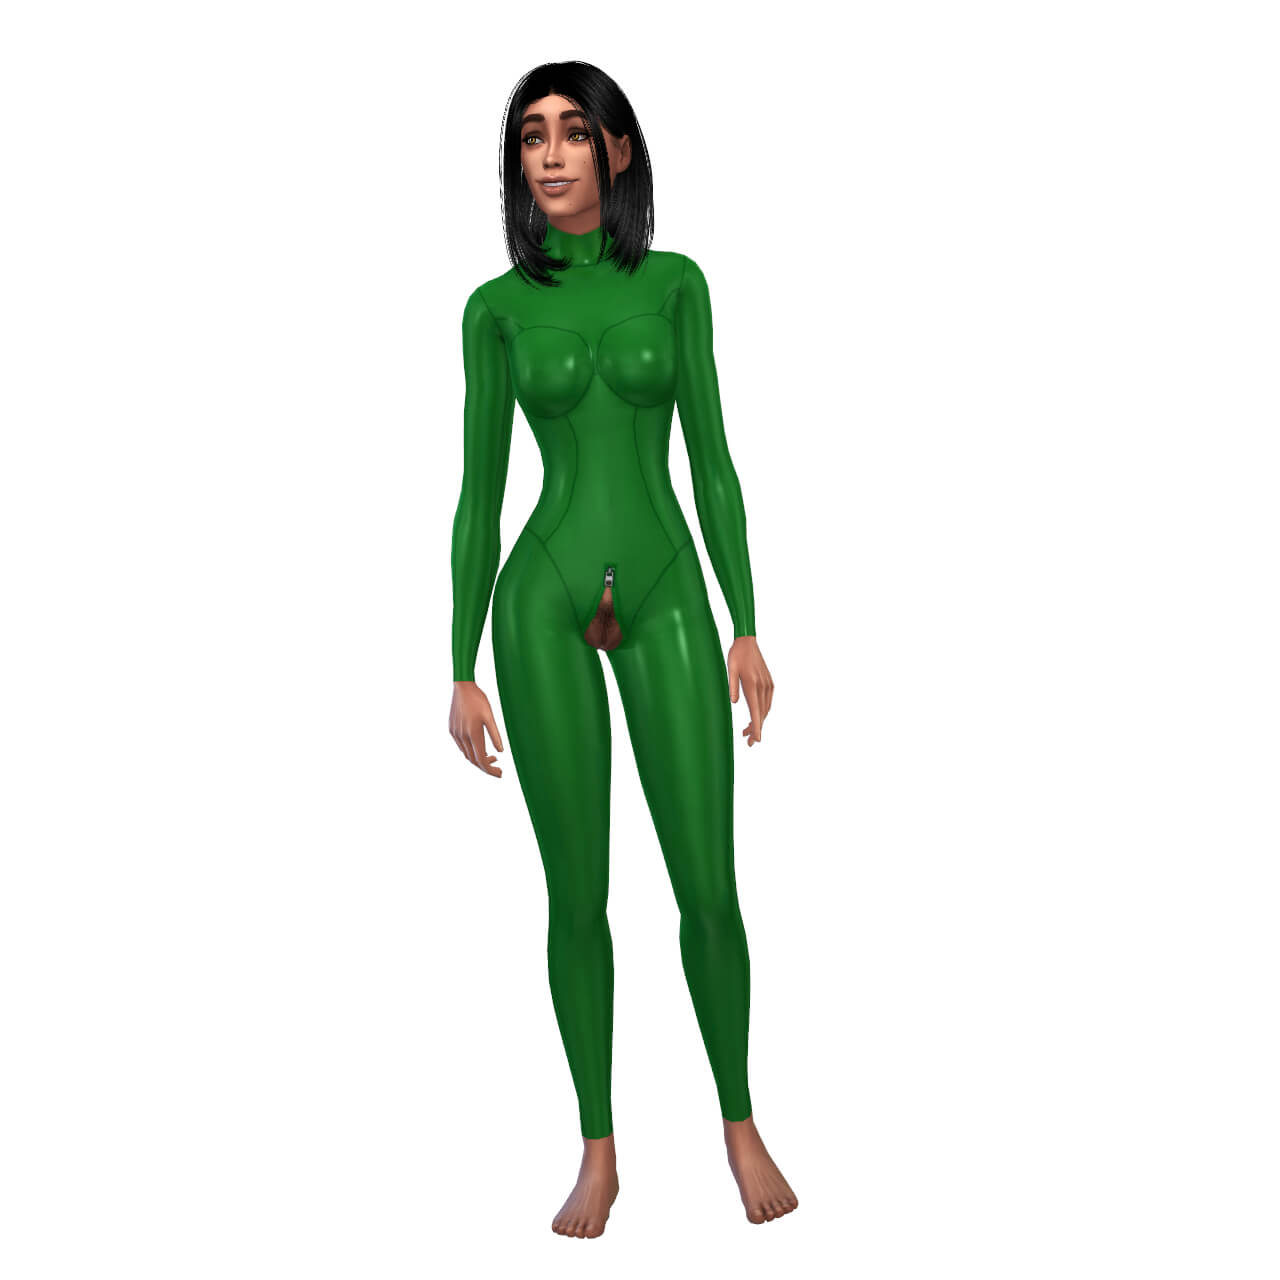 Latex Basic Suit with zipper open